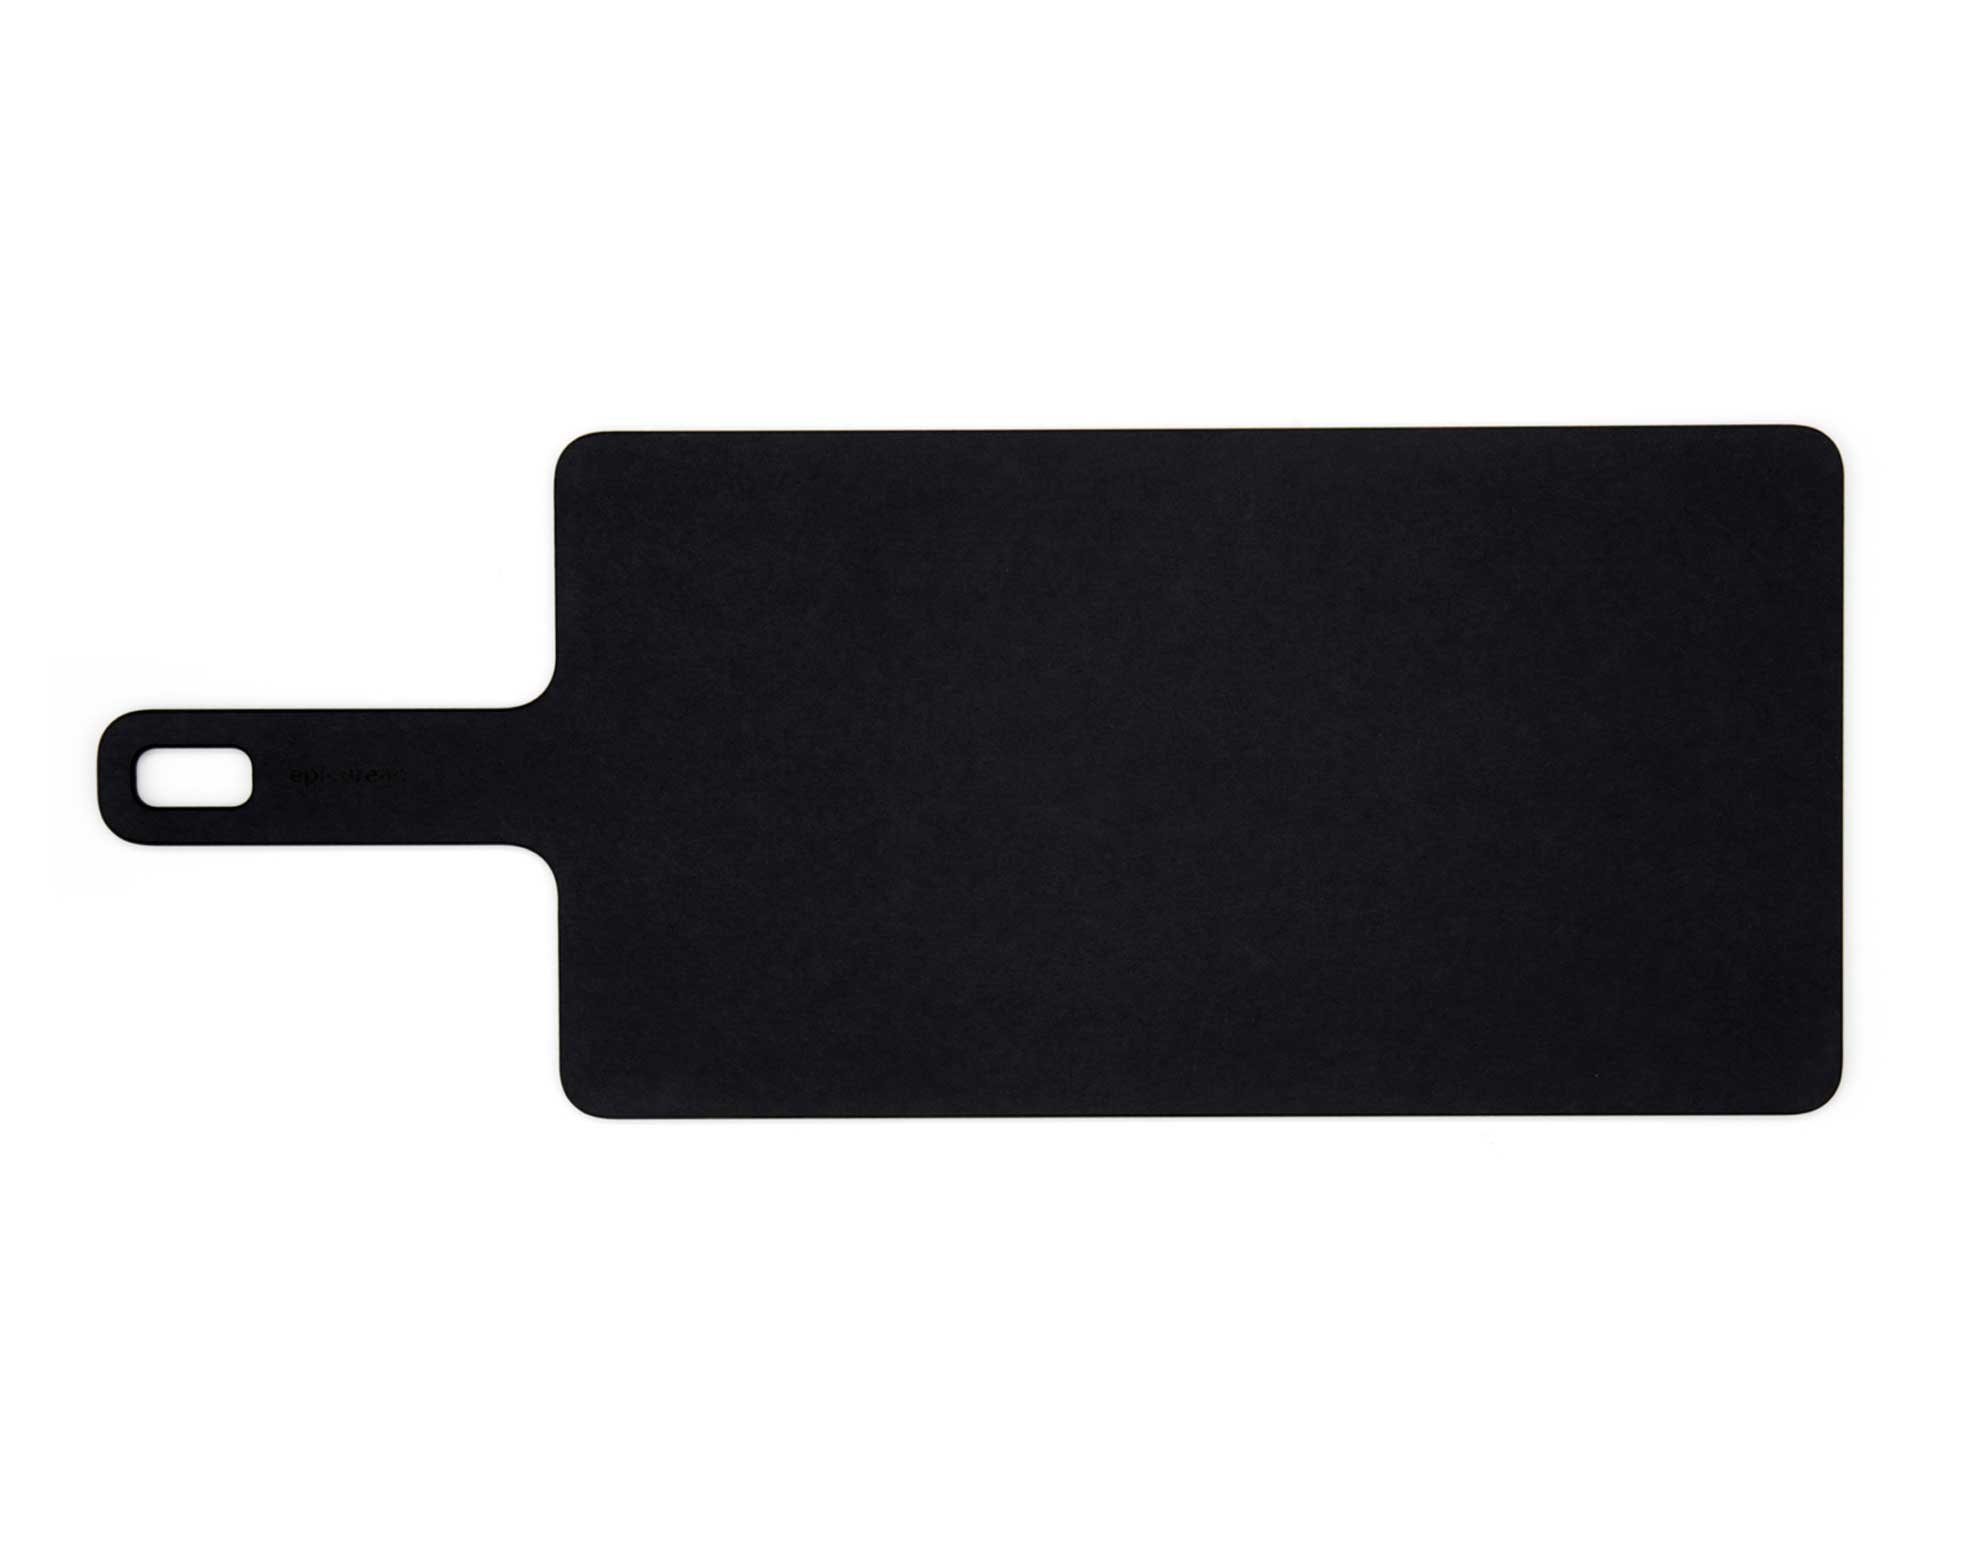 Epicurean Handy Series Cutting Board with Handle, 14-Inch by 7-Inch, Slate